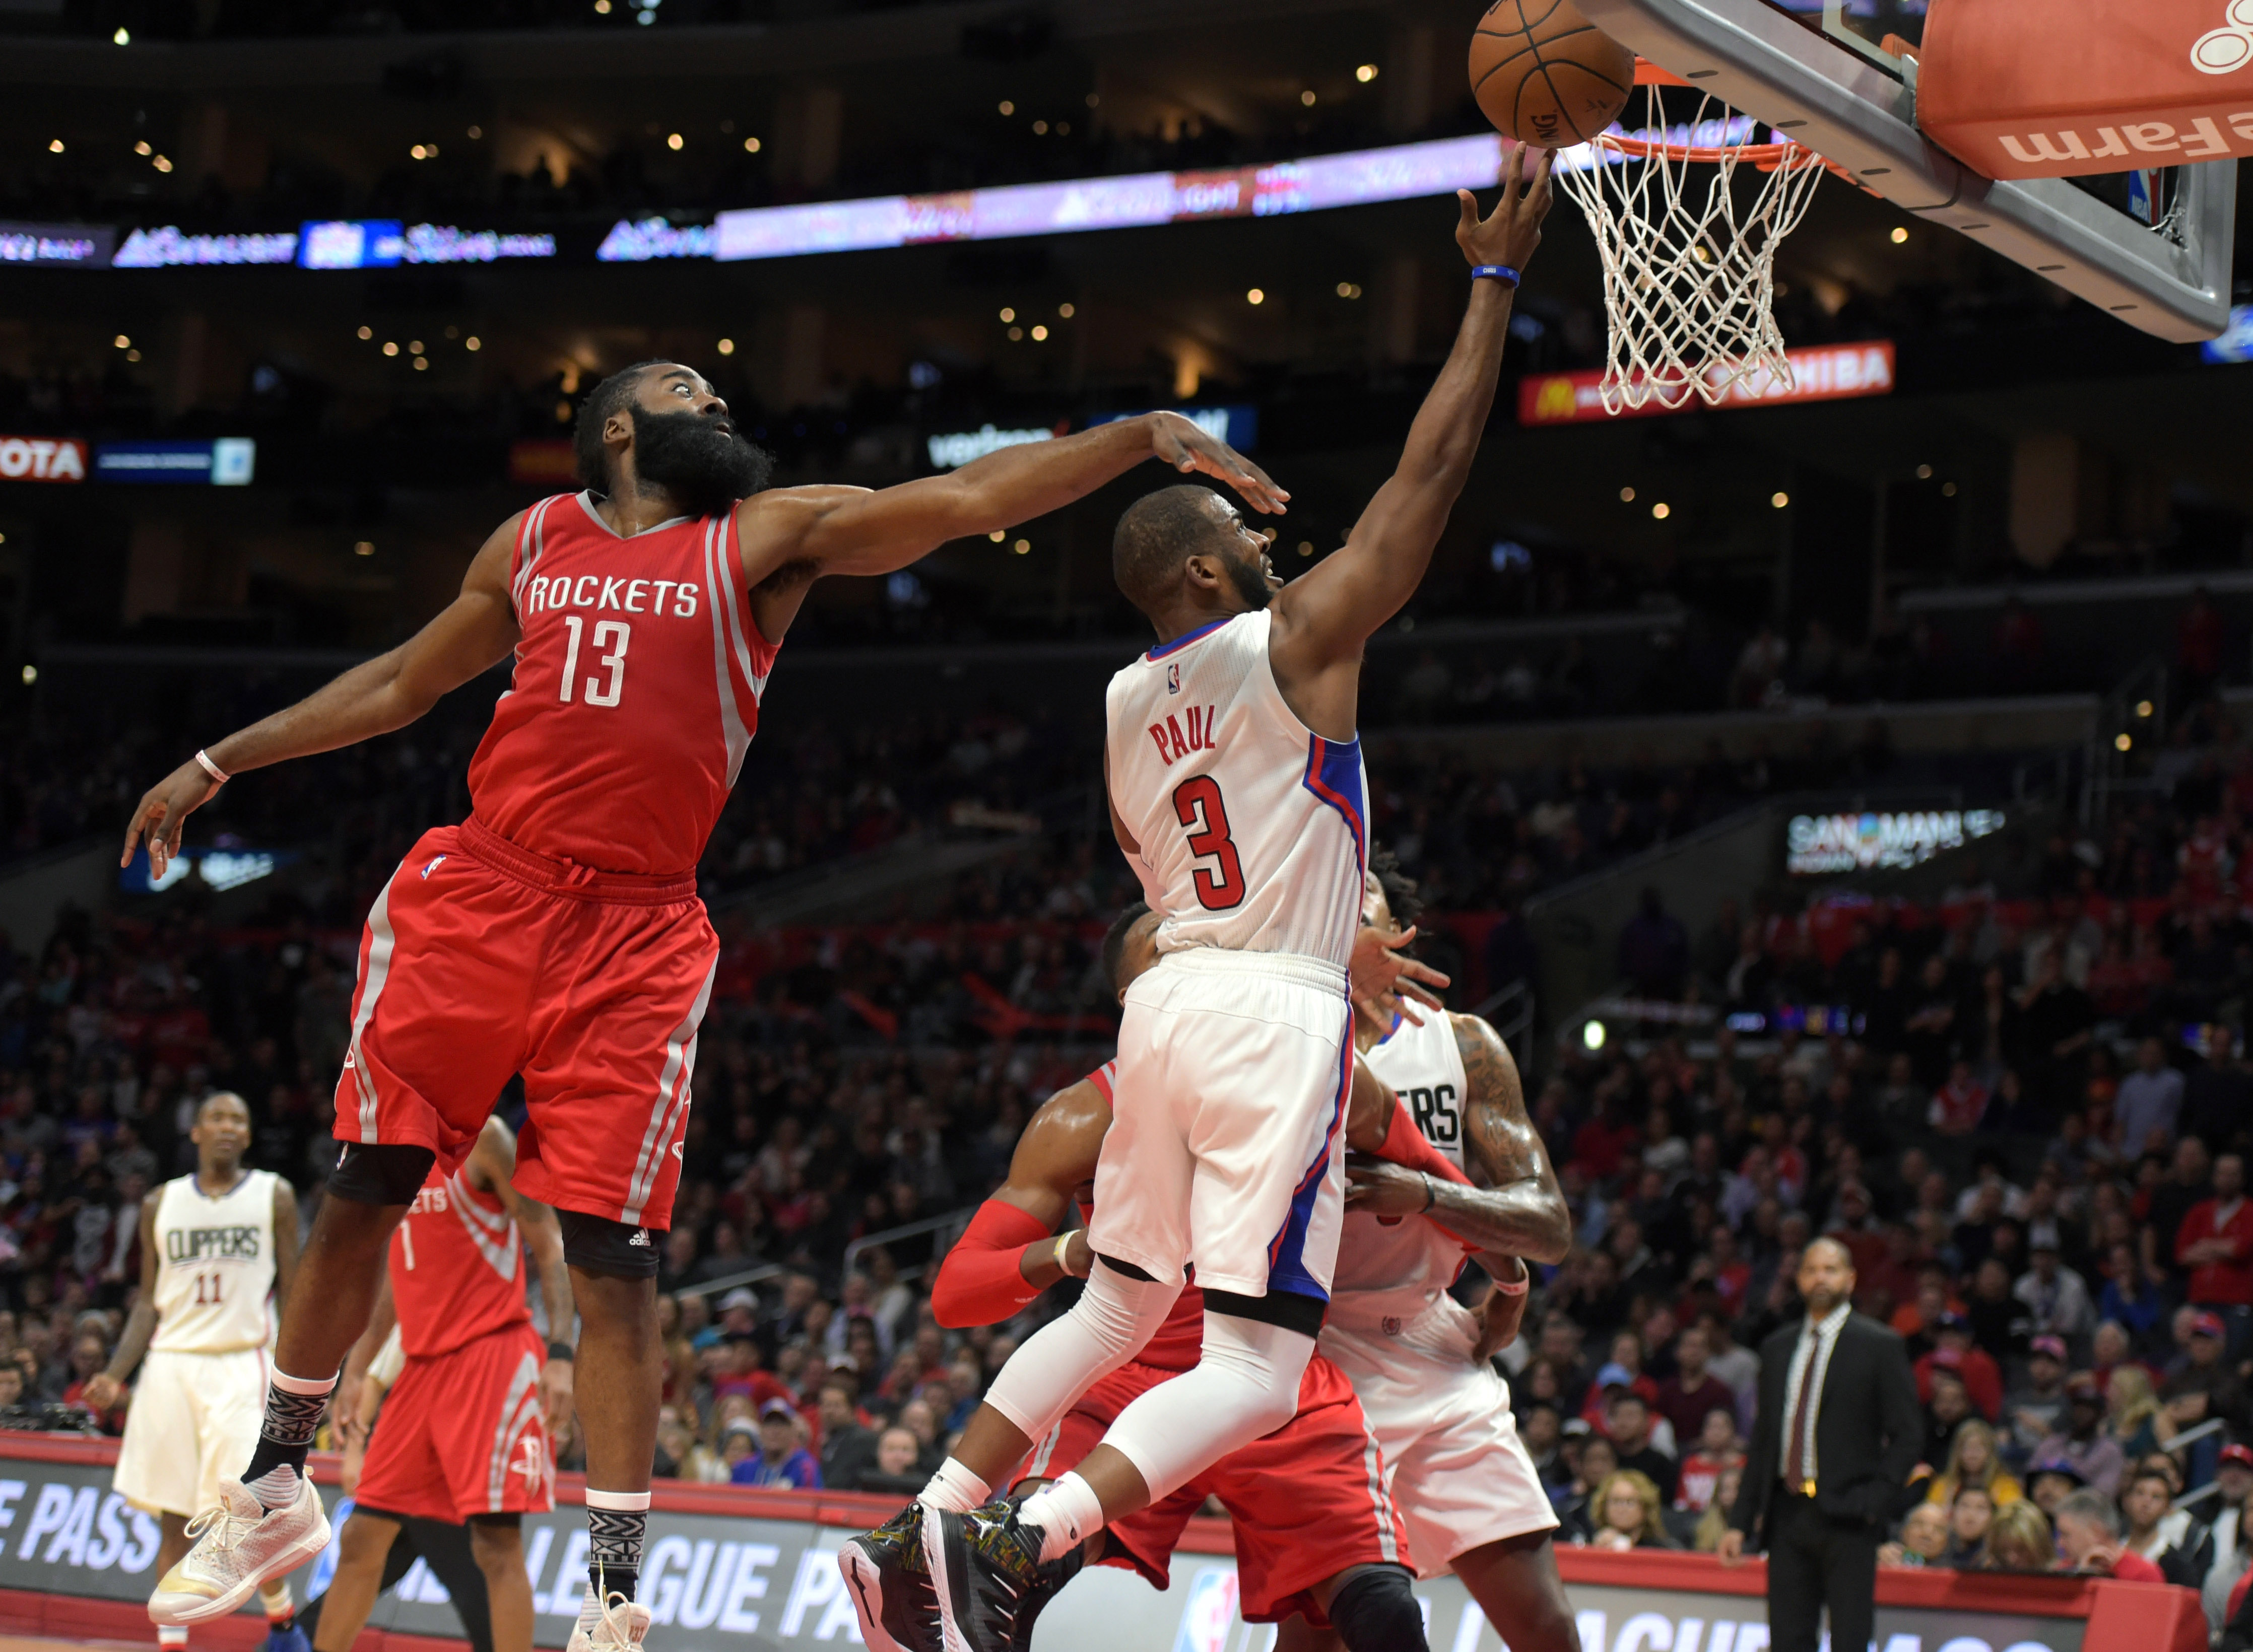 9065905-nba-houston-rockets-at-los-angeles-clippers